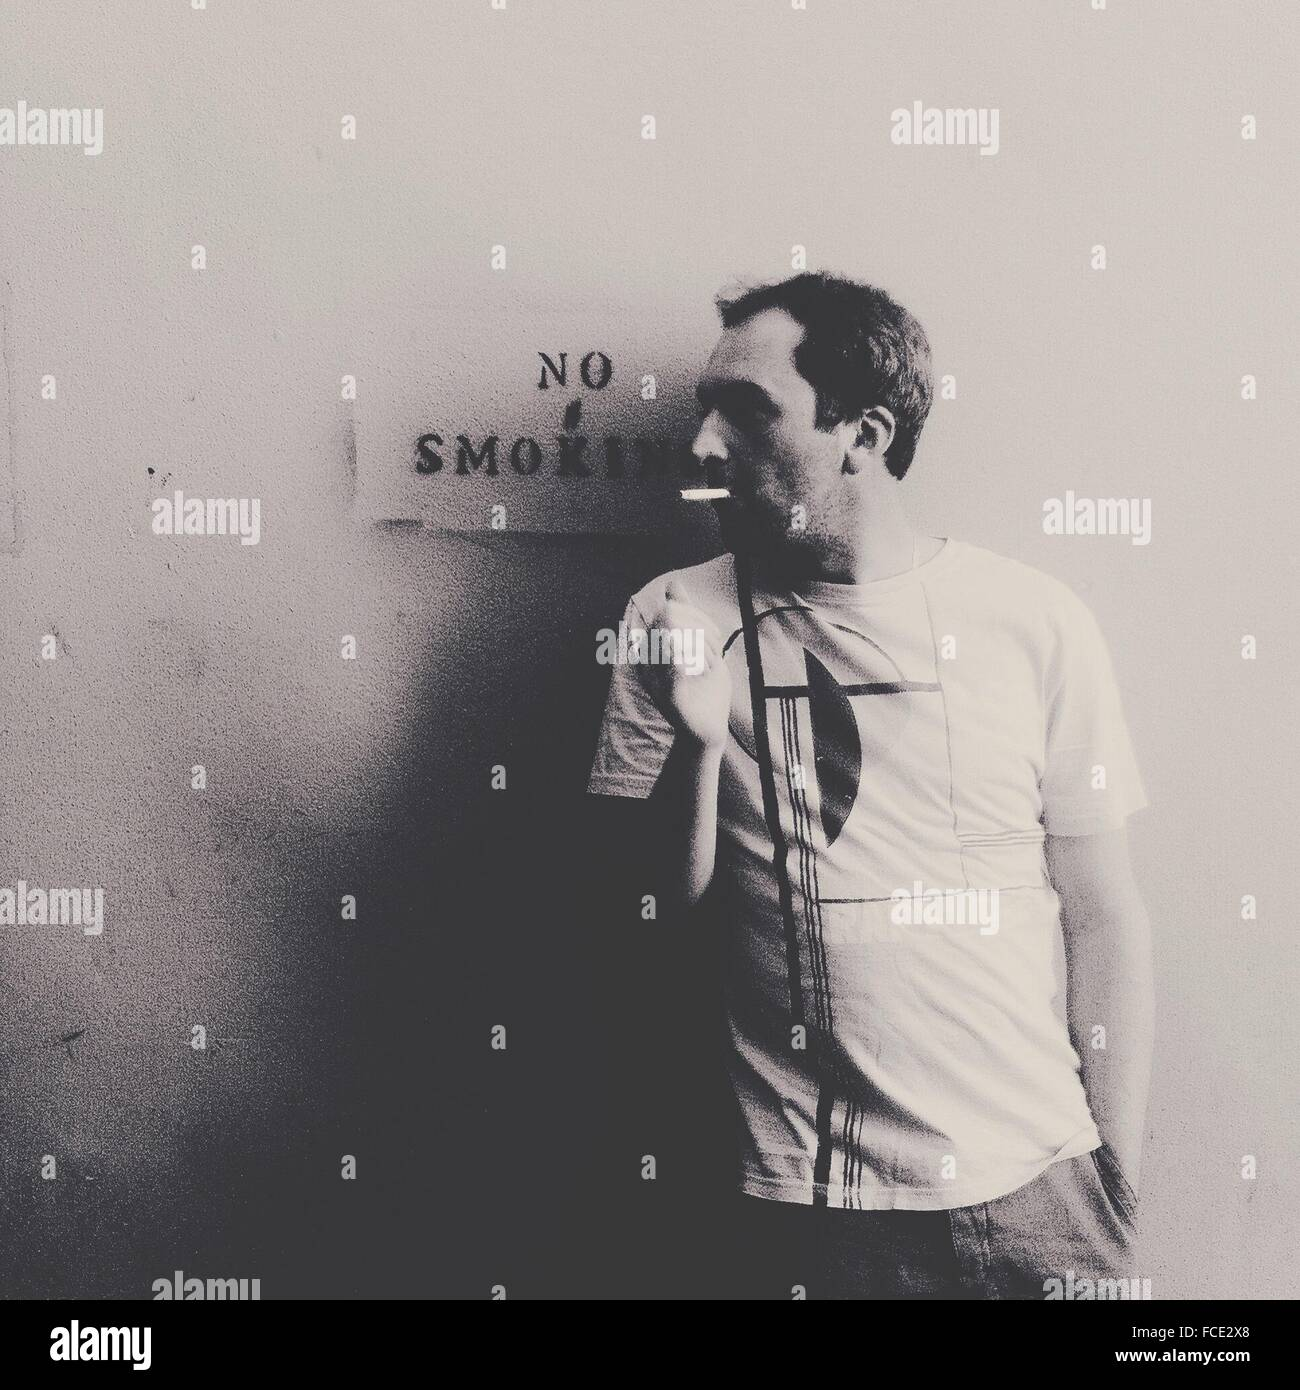 Man Smoking Against Warning Sign - Stock Image